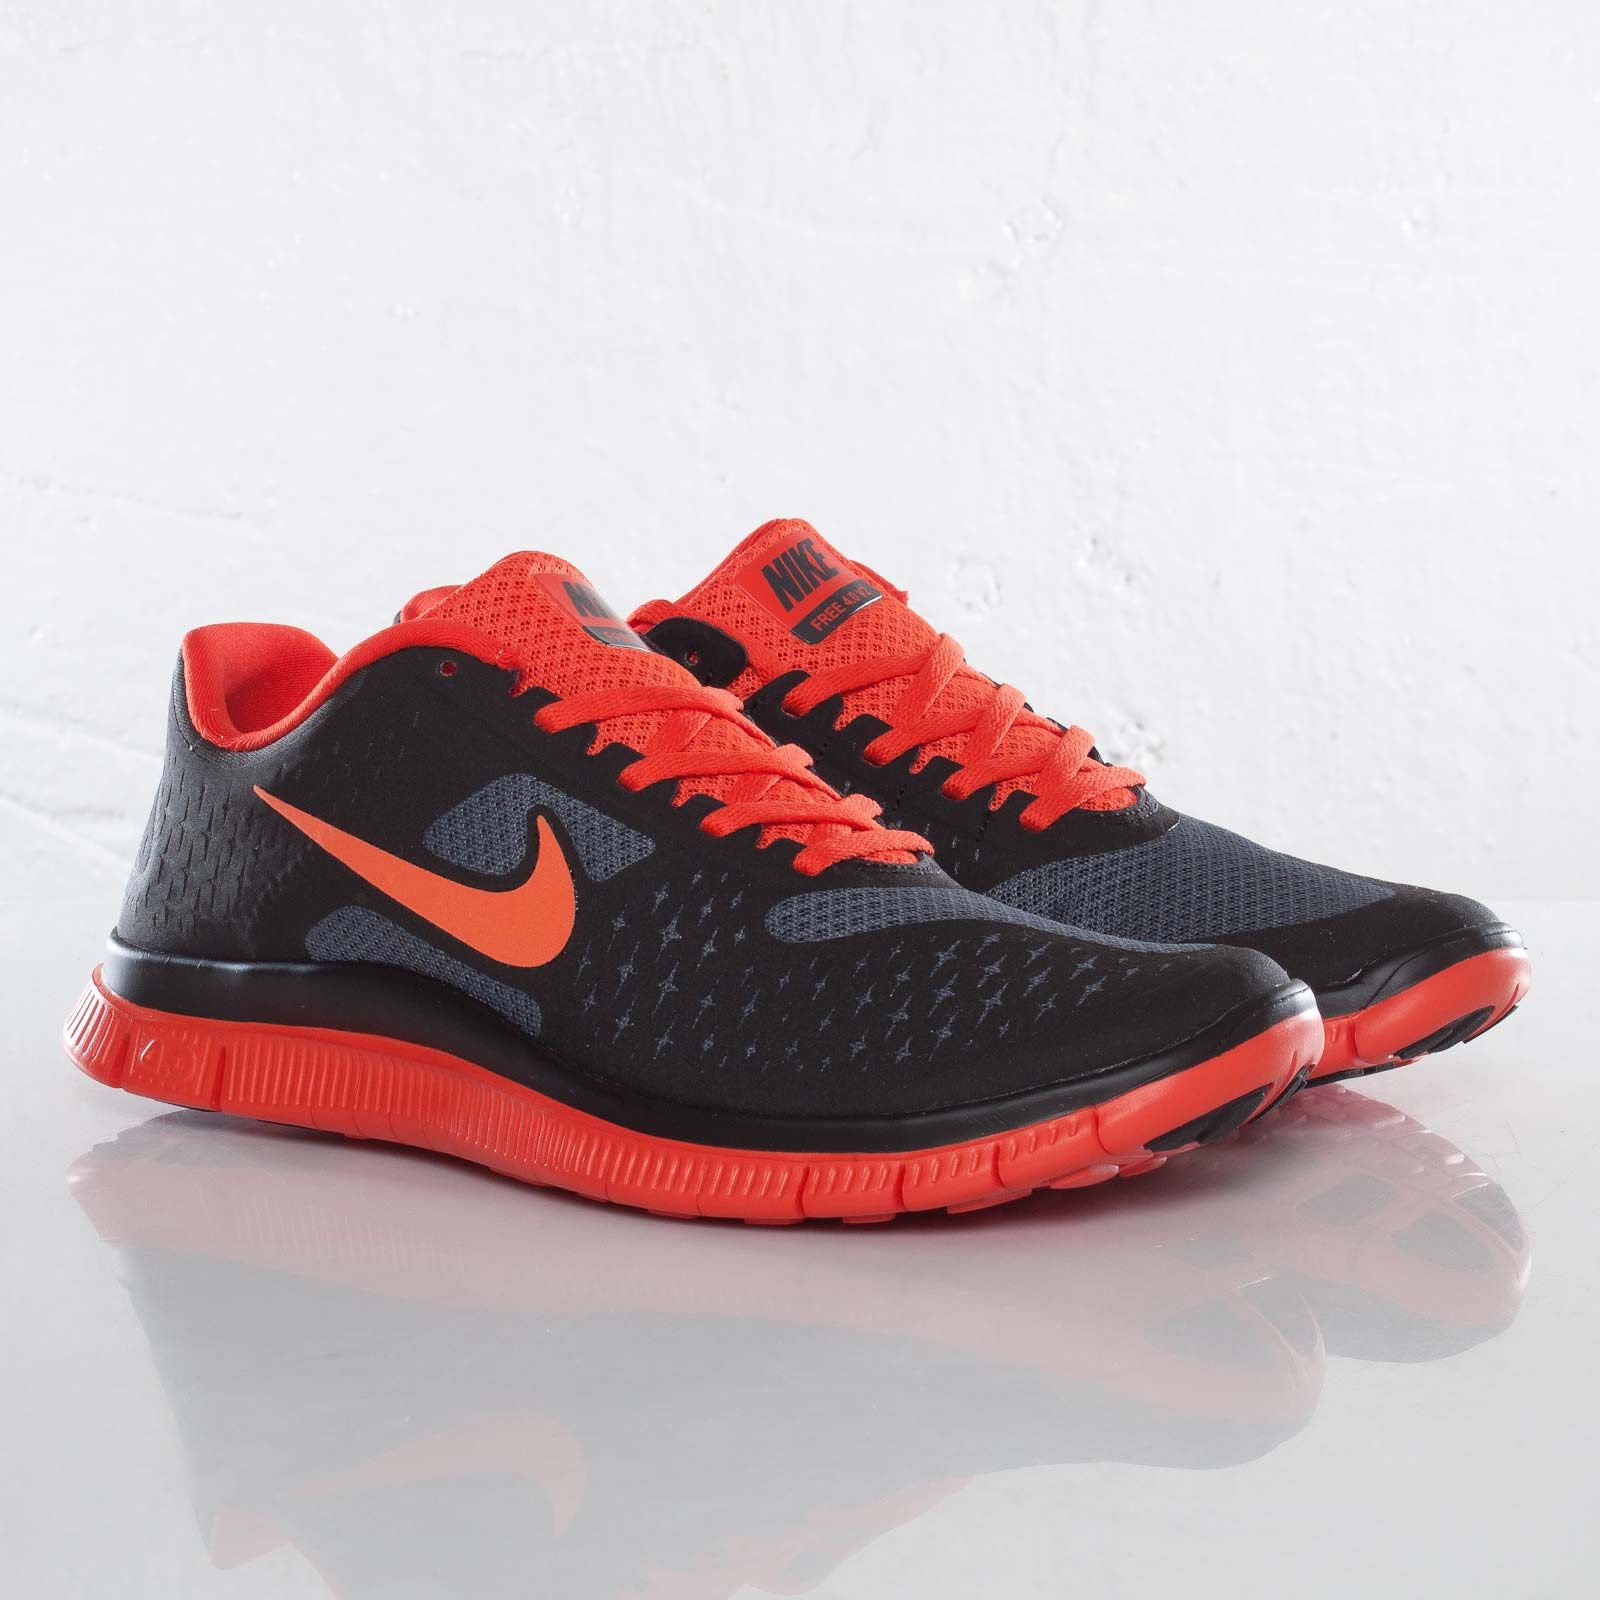 classic fit c9ca7 1e140 Nike Free 4.0 V2 - 511472-010 - Sneakersnstuff | sneakers ...